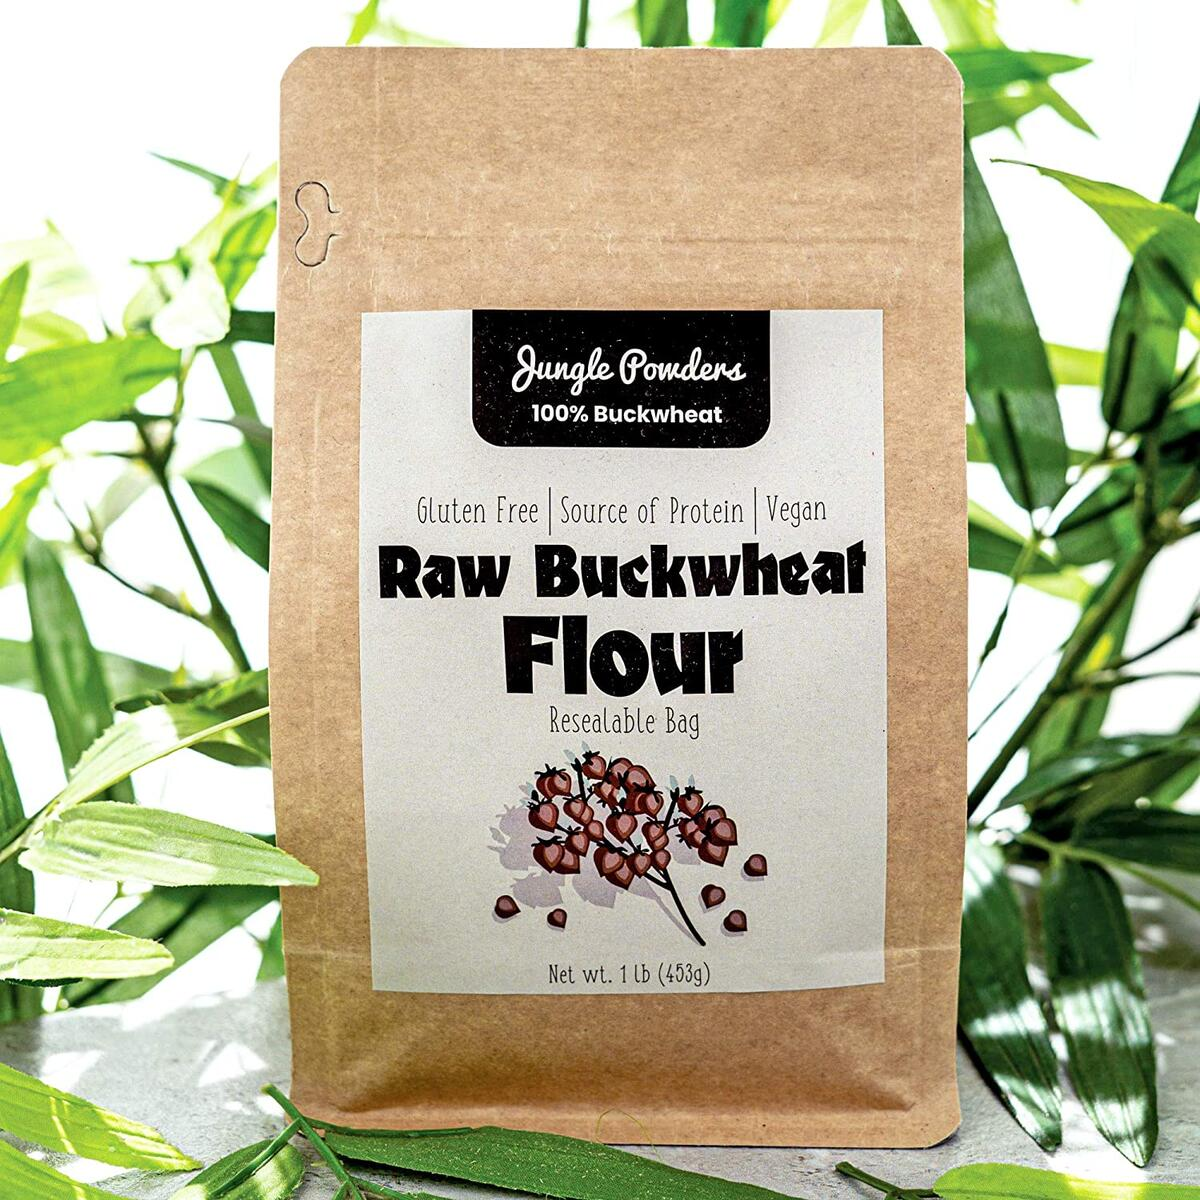 Jungle Powders Raw Buckwheat Flour Gluten Free 1lb Light Vegan Cooking Powder…